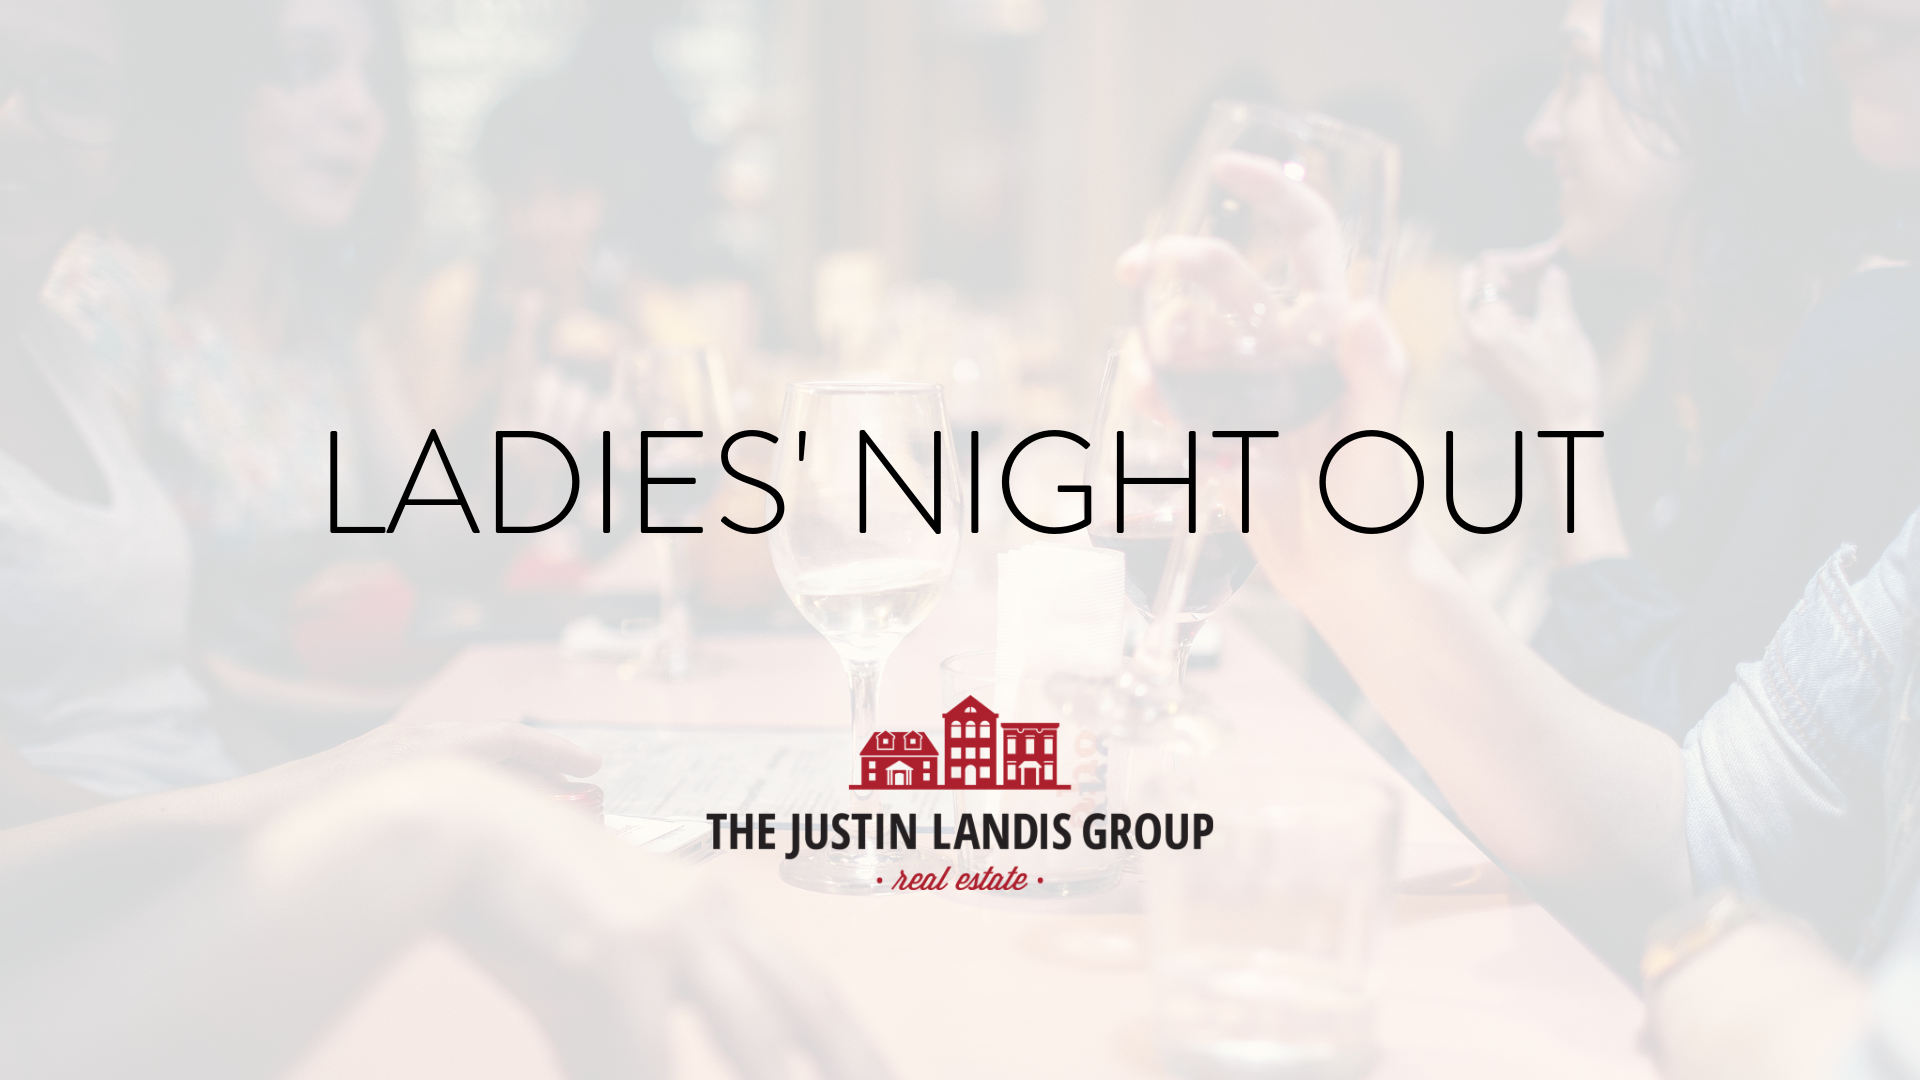 jlg ladies night out